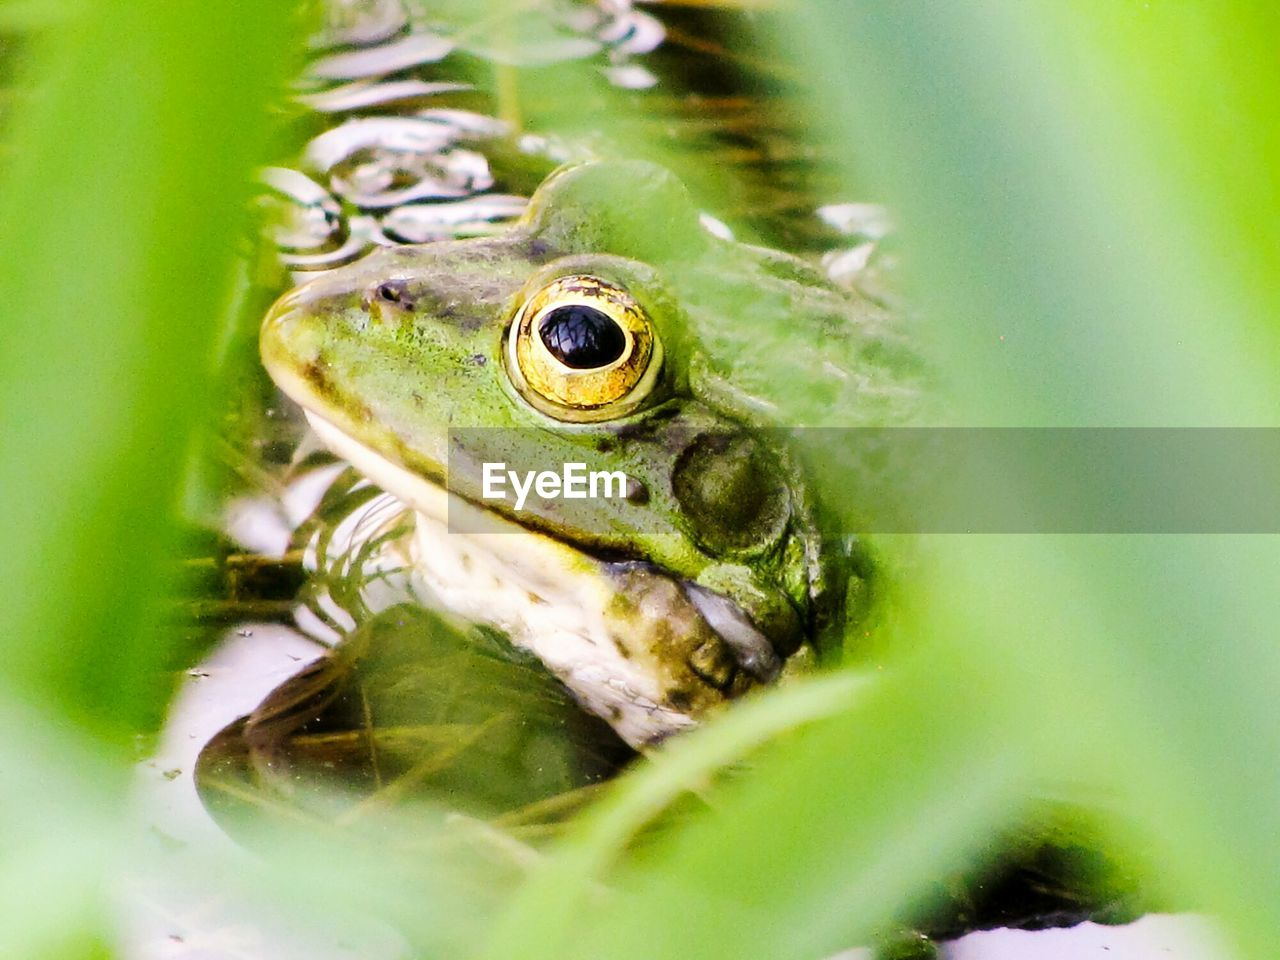 animal, animal themes, animals in the wild, animal wildlife, selective focus, green color, one animal, amphibian, close-up, frog, vertebrate, nature, plant part, leaf, animal body part, no people, day, animal eye, plant, animal head